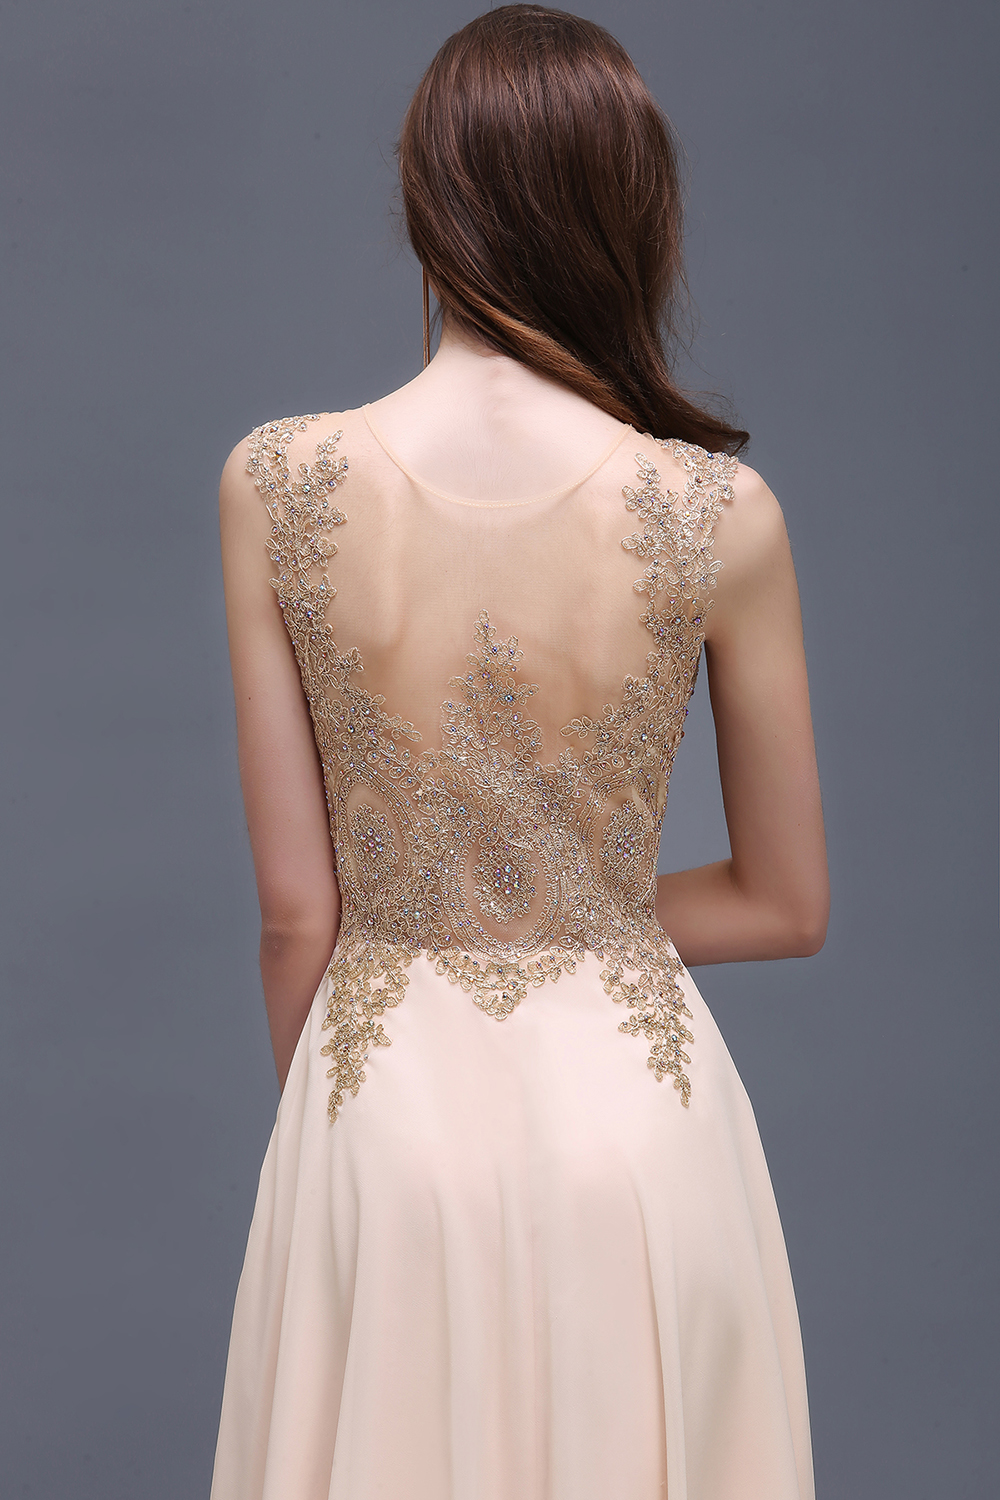 Robe Soiree New Champagne Lace Embroidery Beaded Long Evening Dress Sexy  Sheer Back Chiffon Evening Party Dresses-in Evening Dresses from Weddings    Events ... 739864cef998